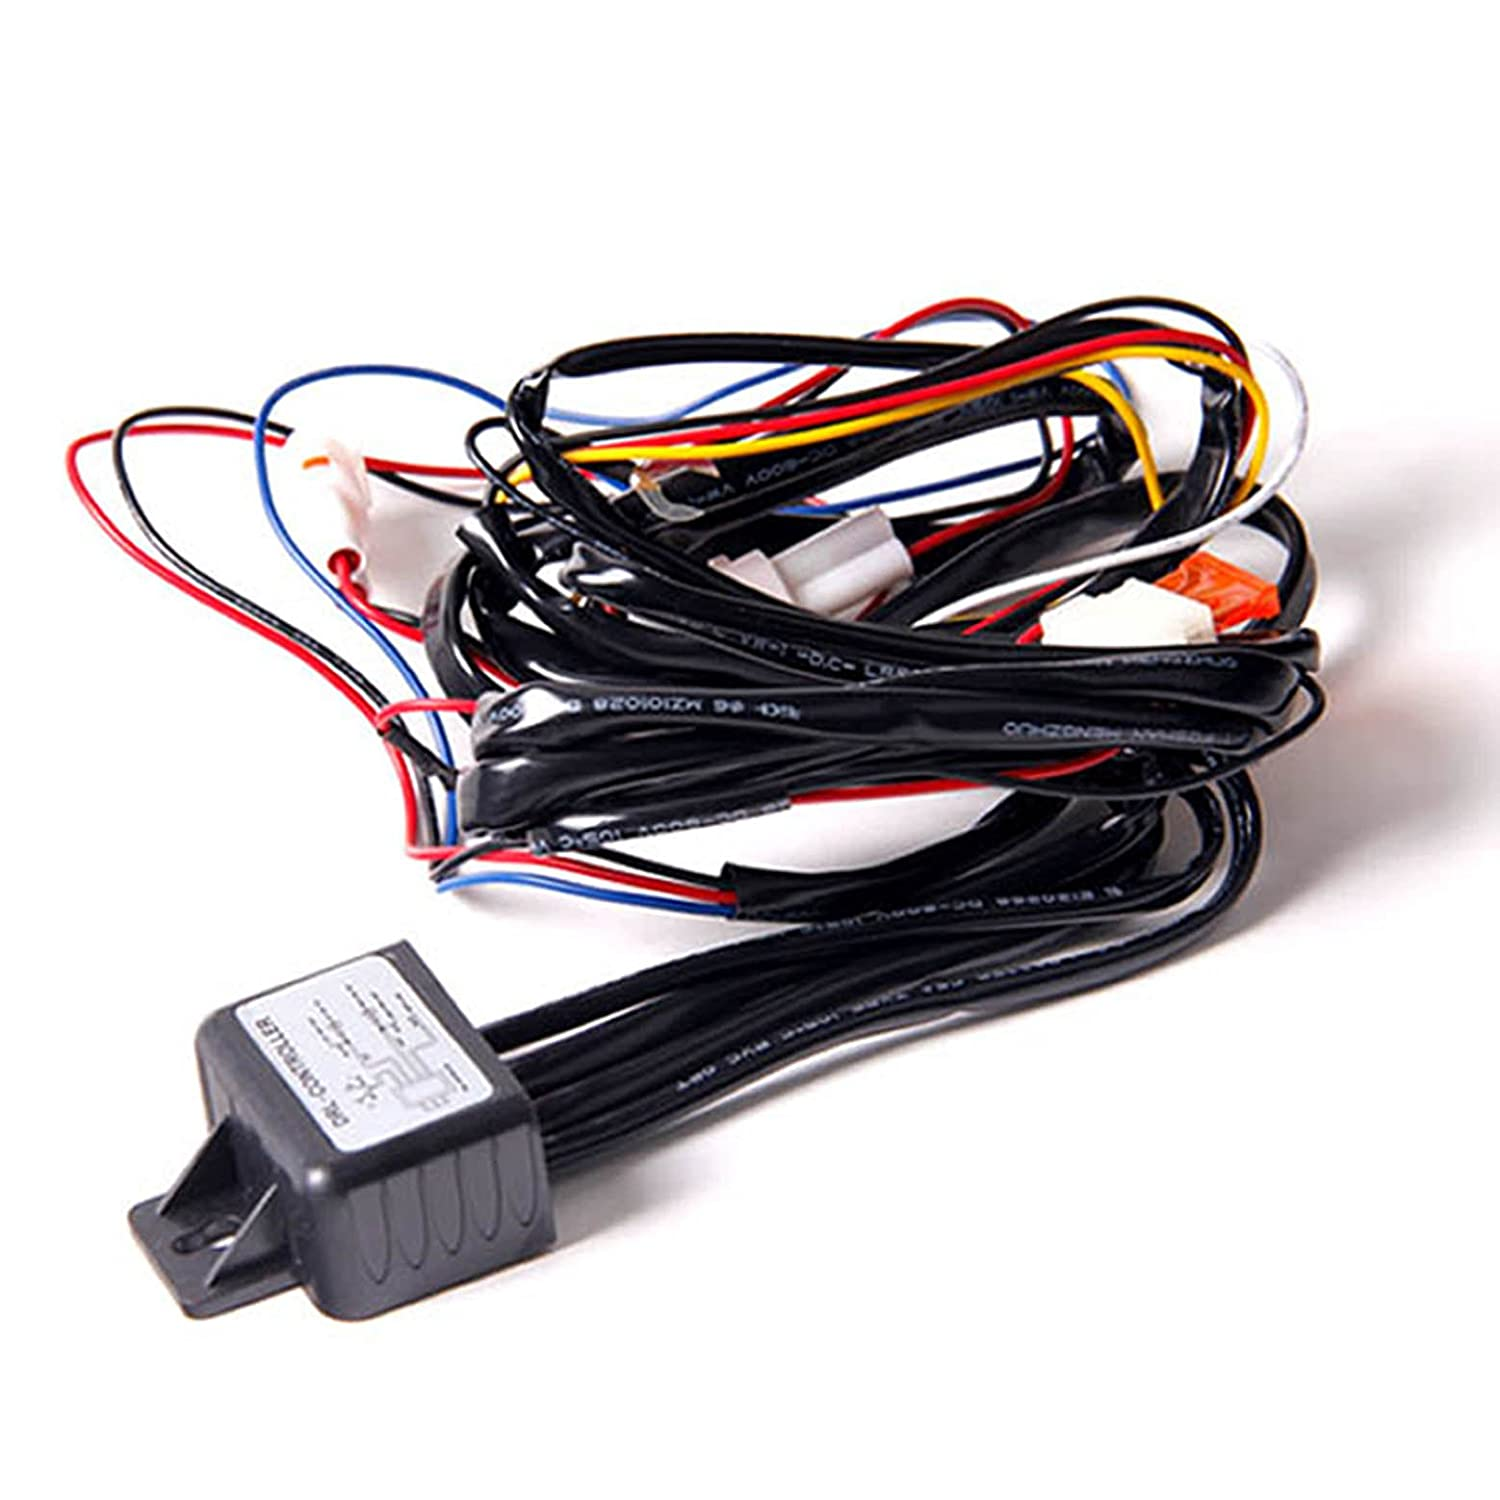 Wadoy Led Daytime Running Light Drl Relay Harness Automatic On Off Wiring Manufacturers In Uk Control Car Motorbike